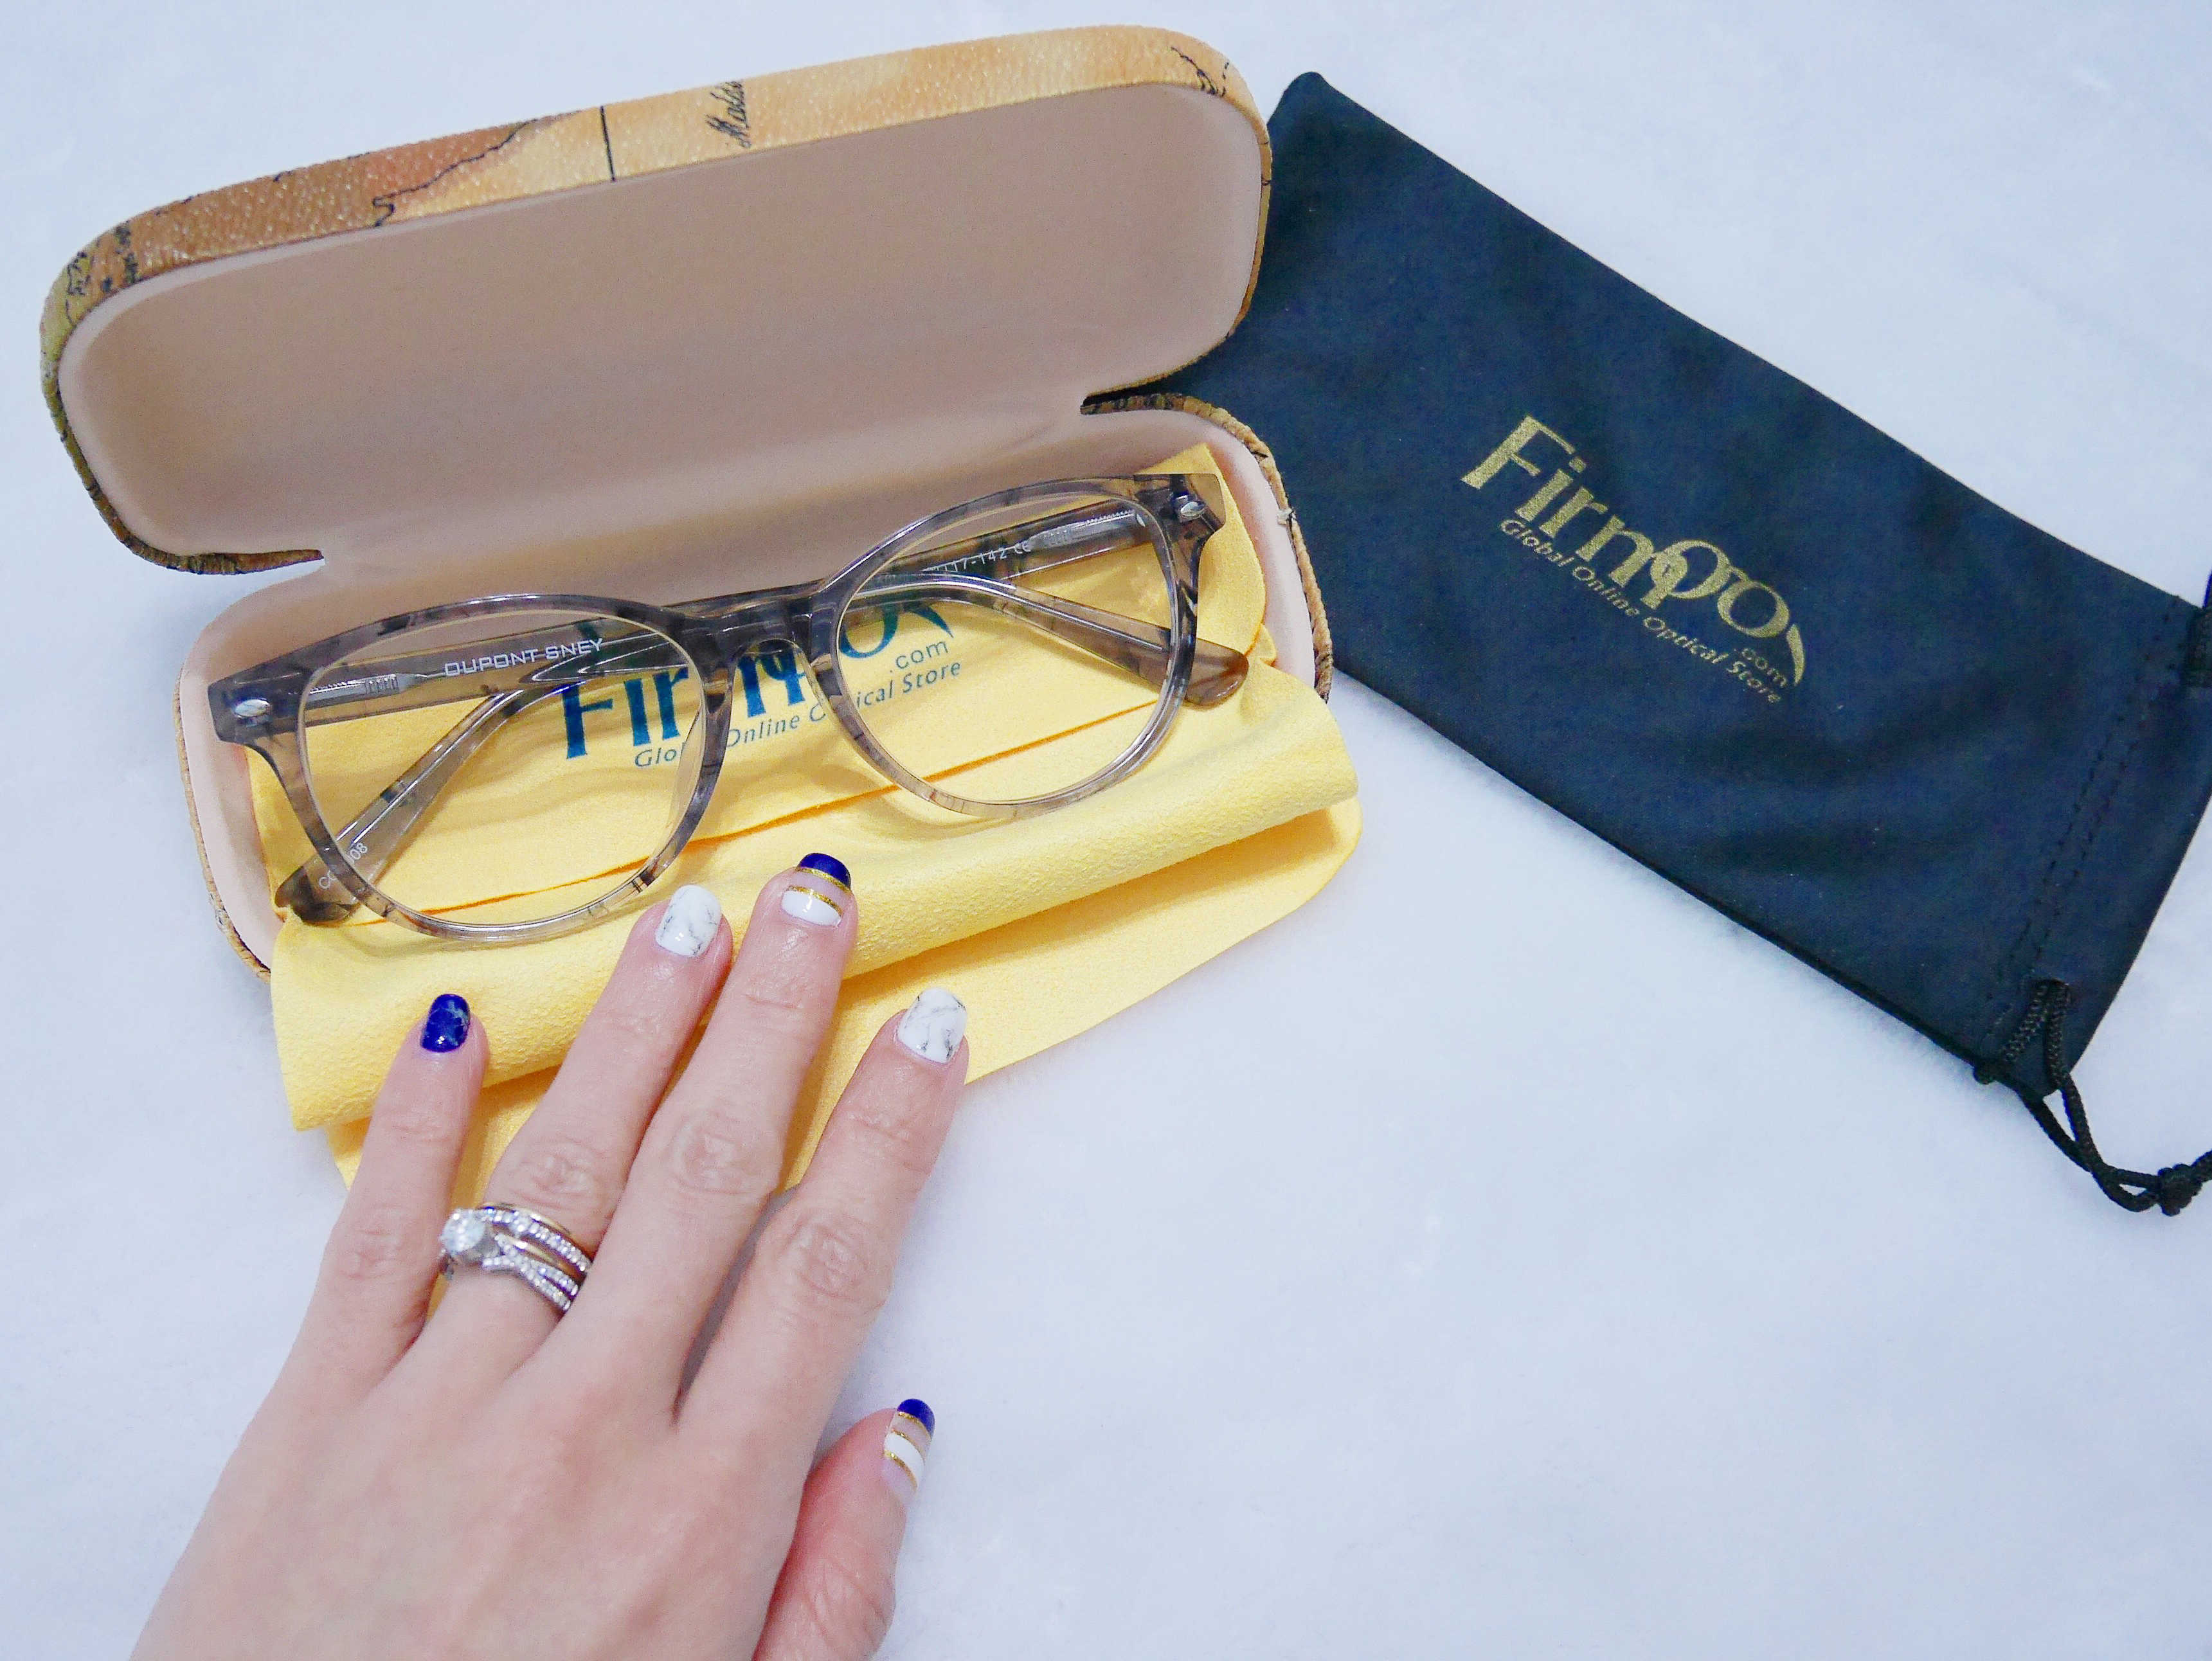 5f637aa65c Firmoo Online Optical Store Review - Aldora Muses